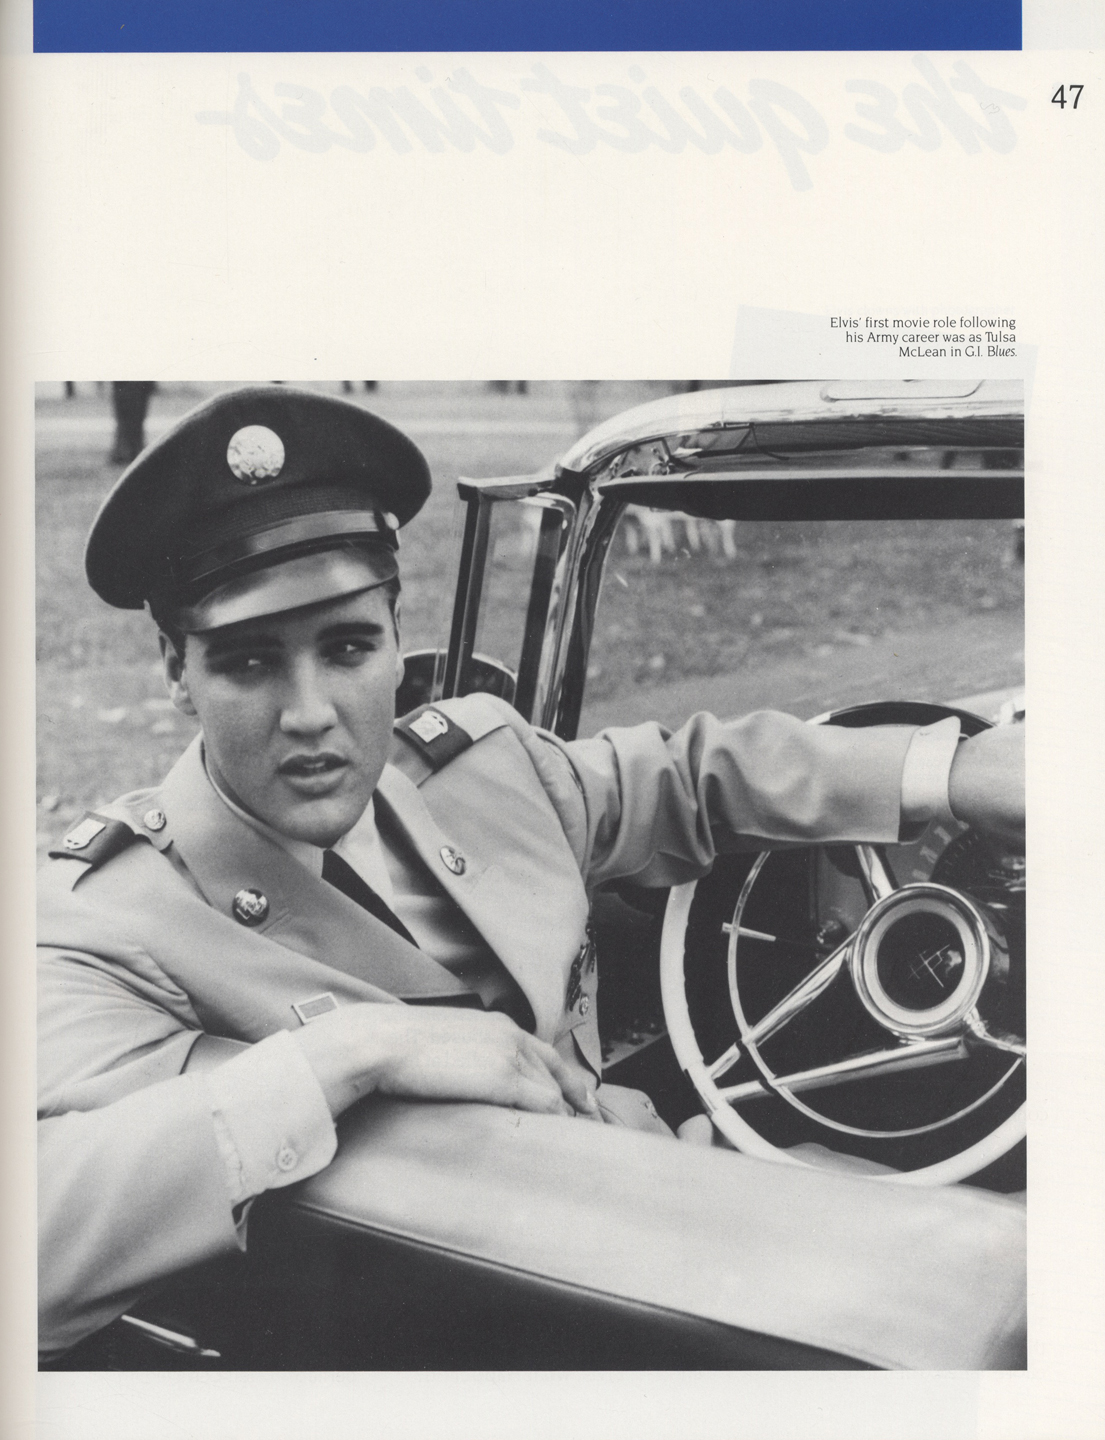 Elvis at Graceland (Rare Guidebook, New in Publisher's Shrink-wrap)